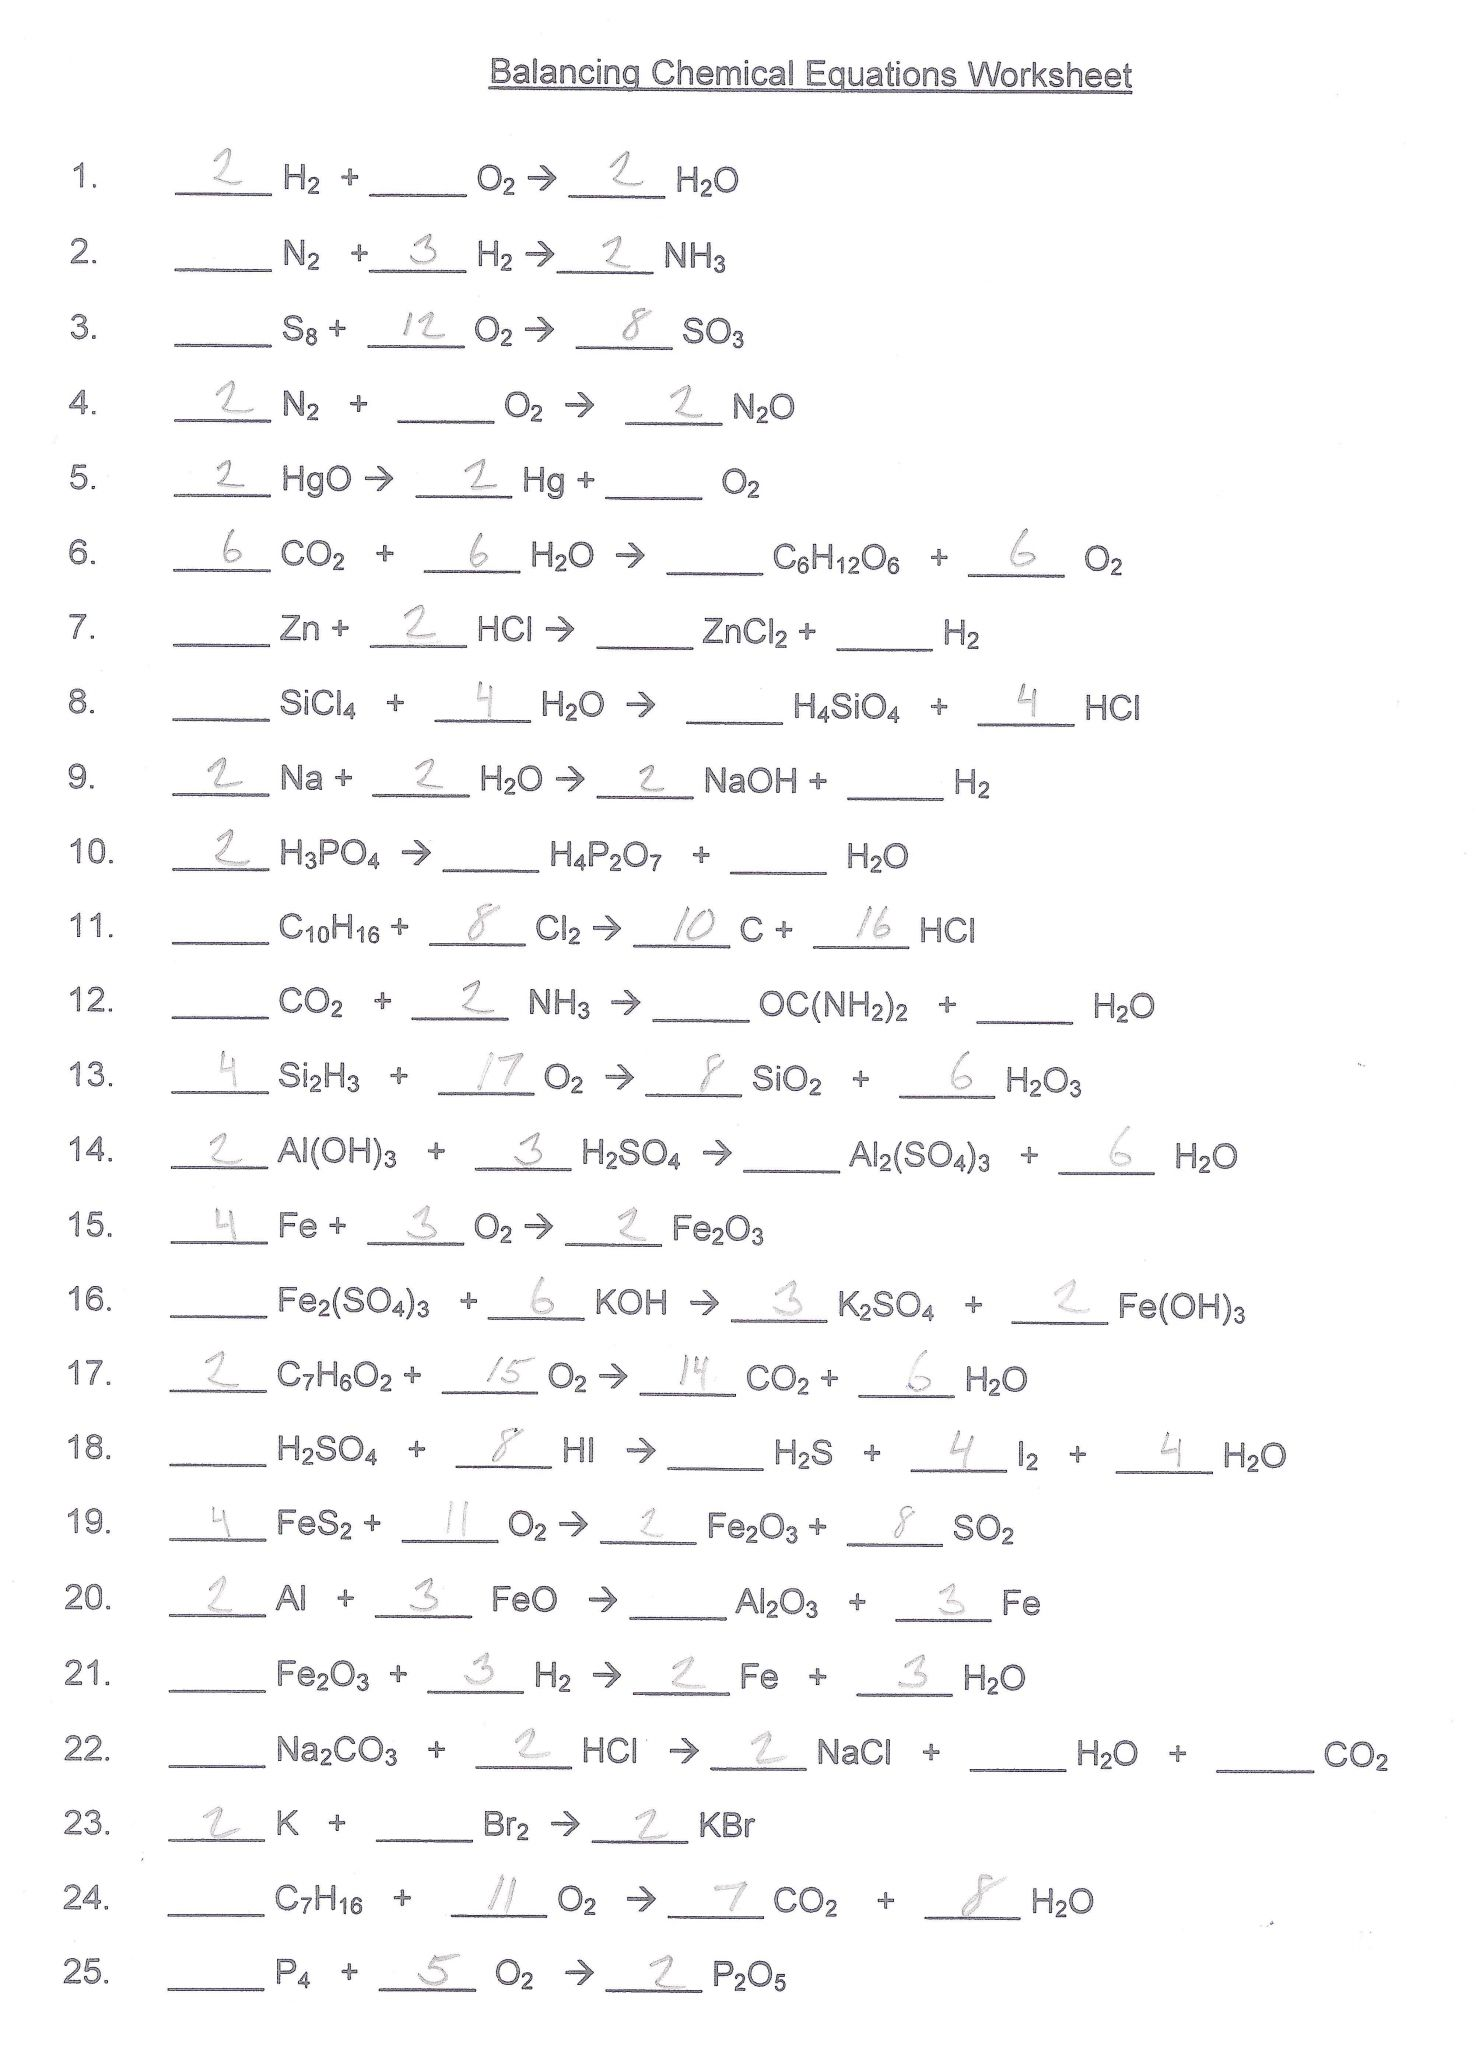 Lewis Structure Worksheet 1 Answer Key